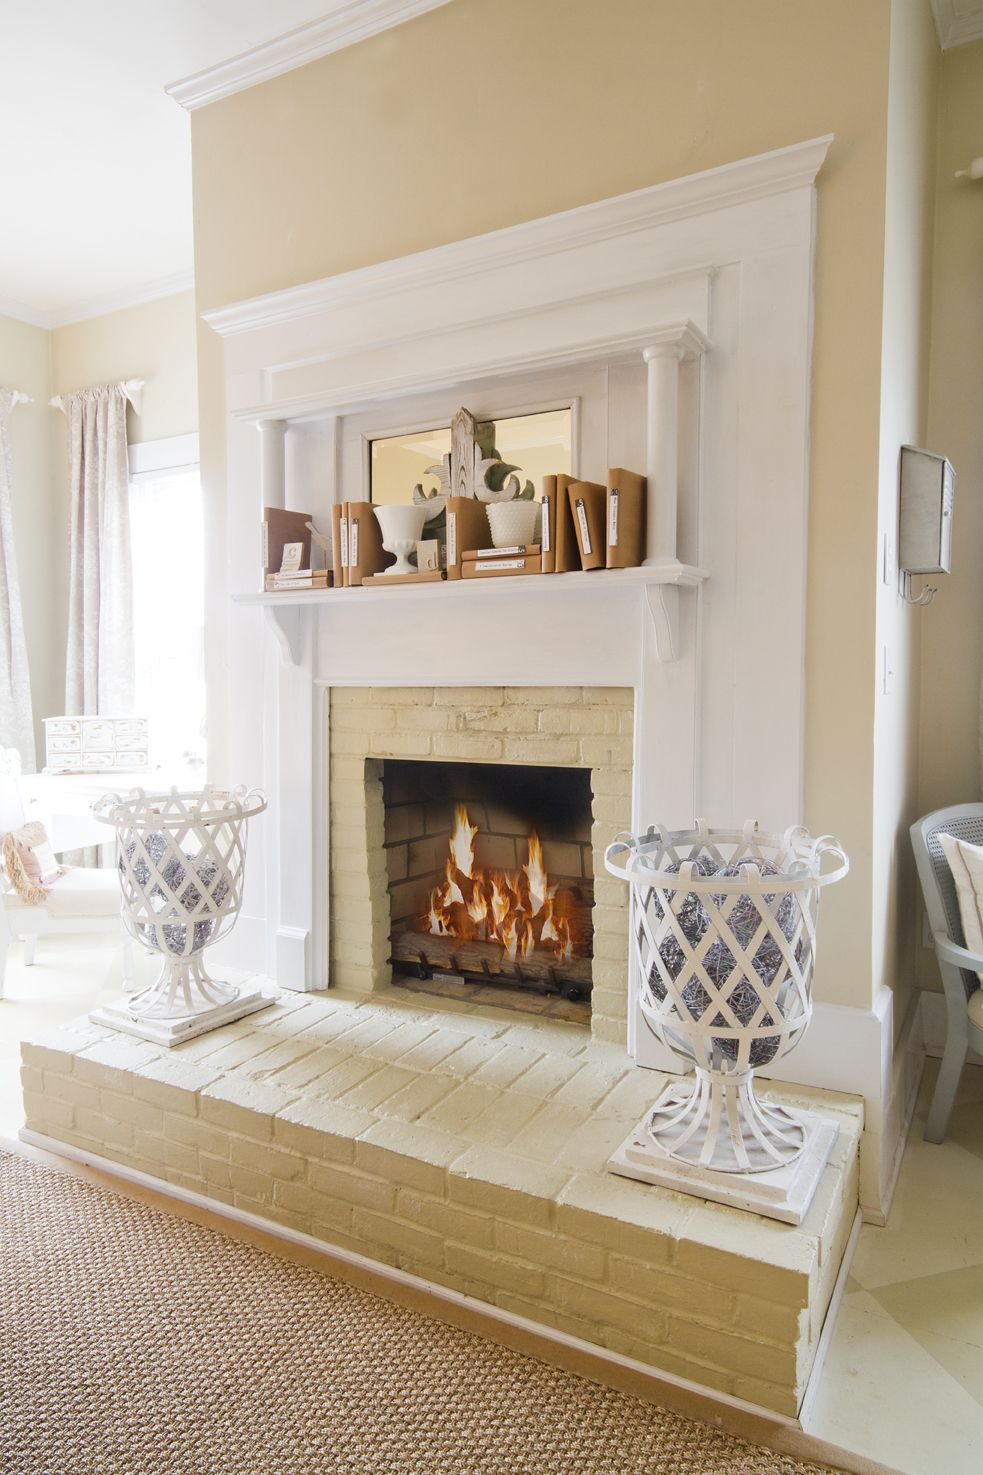 traditional brick fireplace trim out in wood paint the fireplace master bedroom fireplace want want want